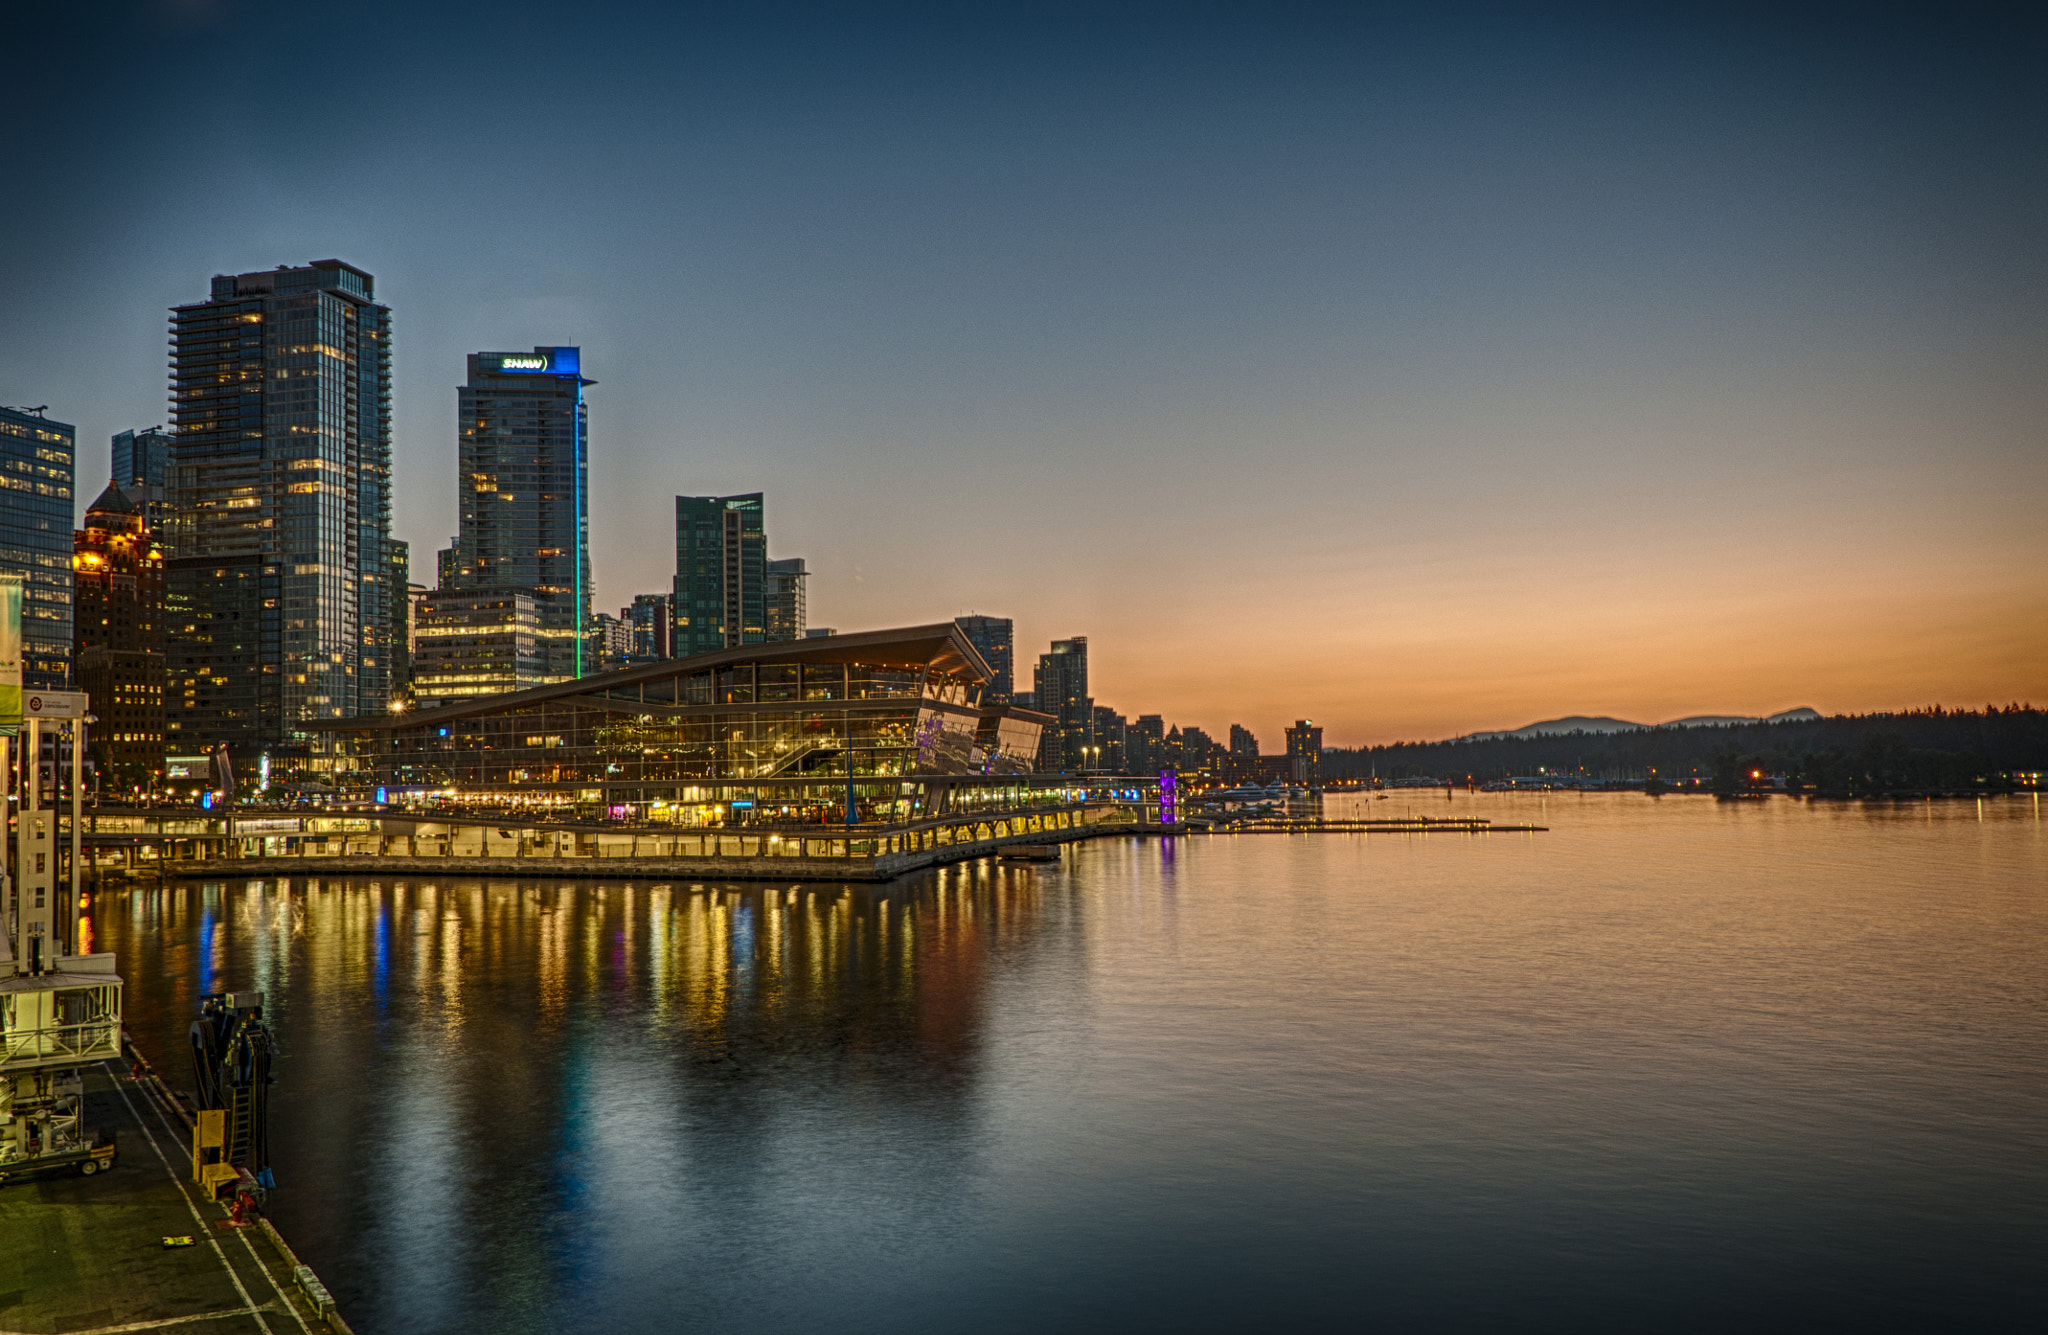 Photograph Vancouver Convention Centre HDR by Andrea Spallanzani on 500px